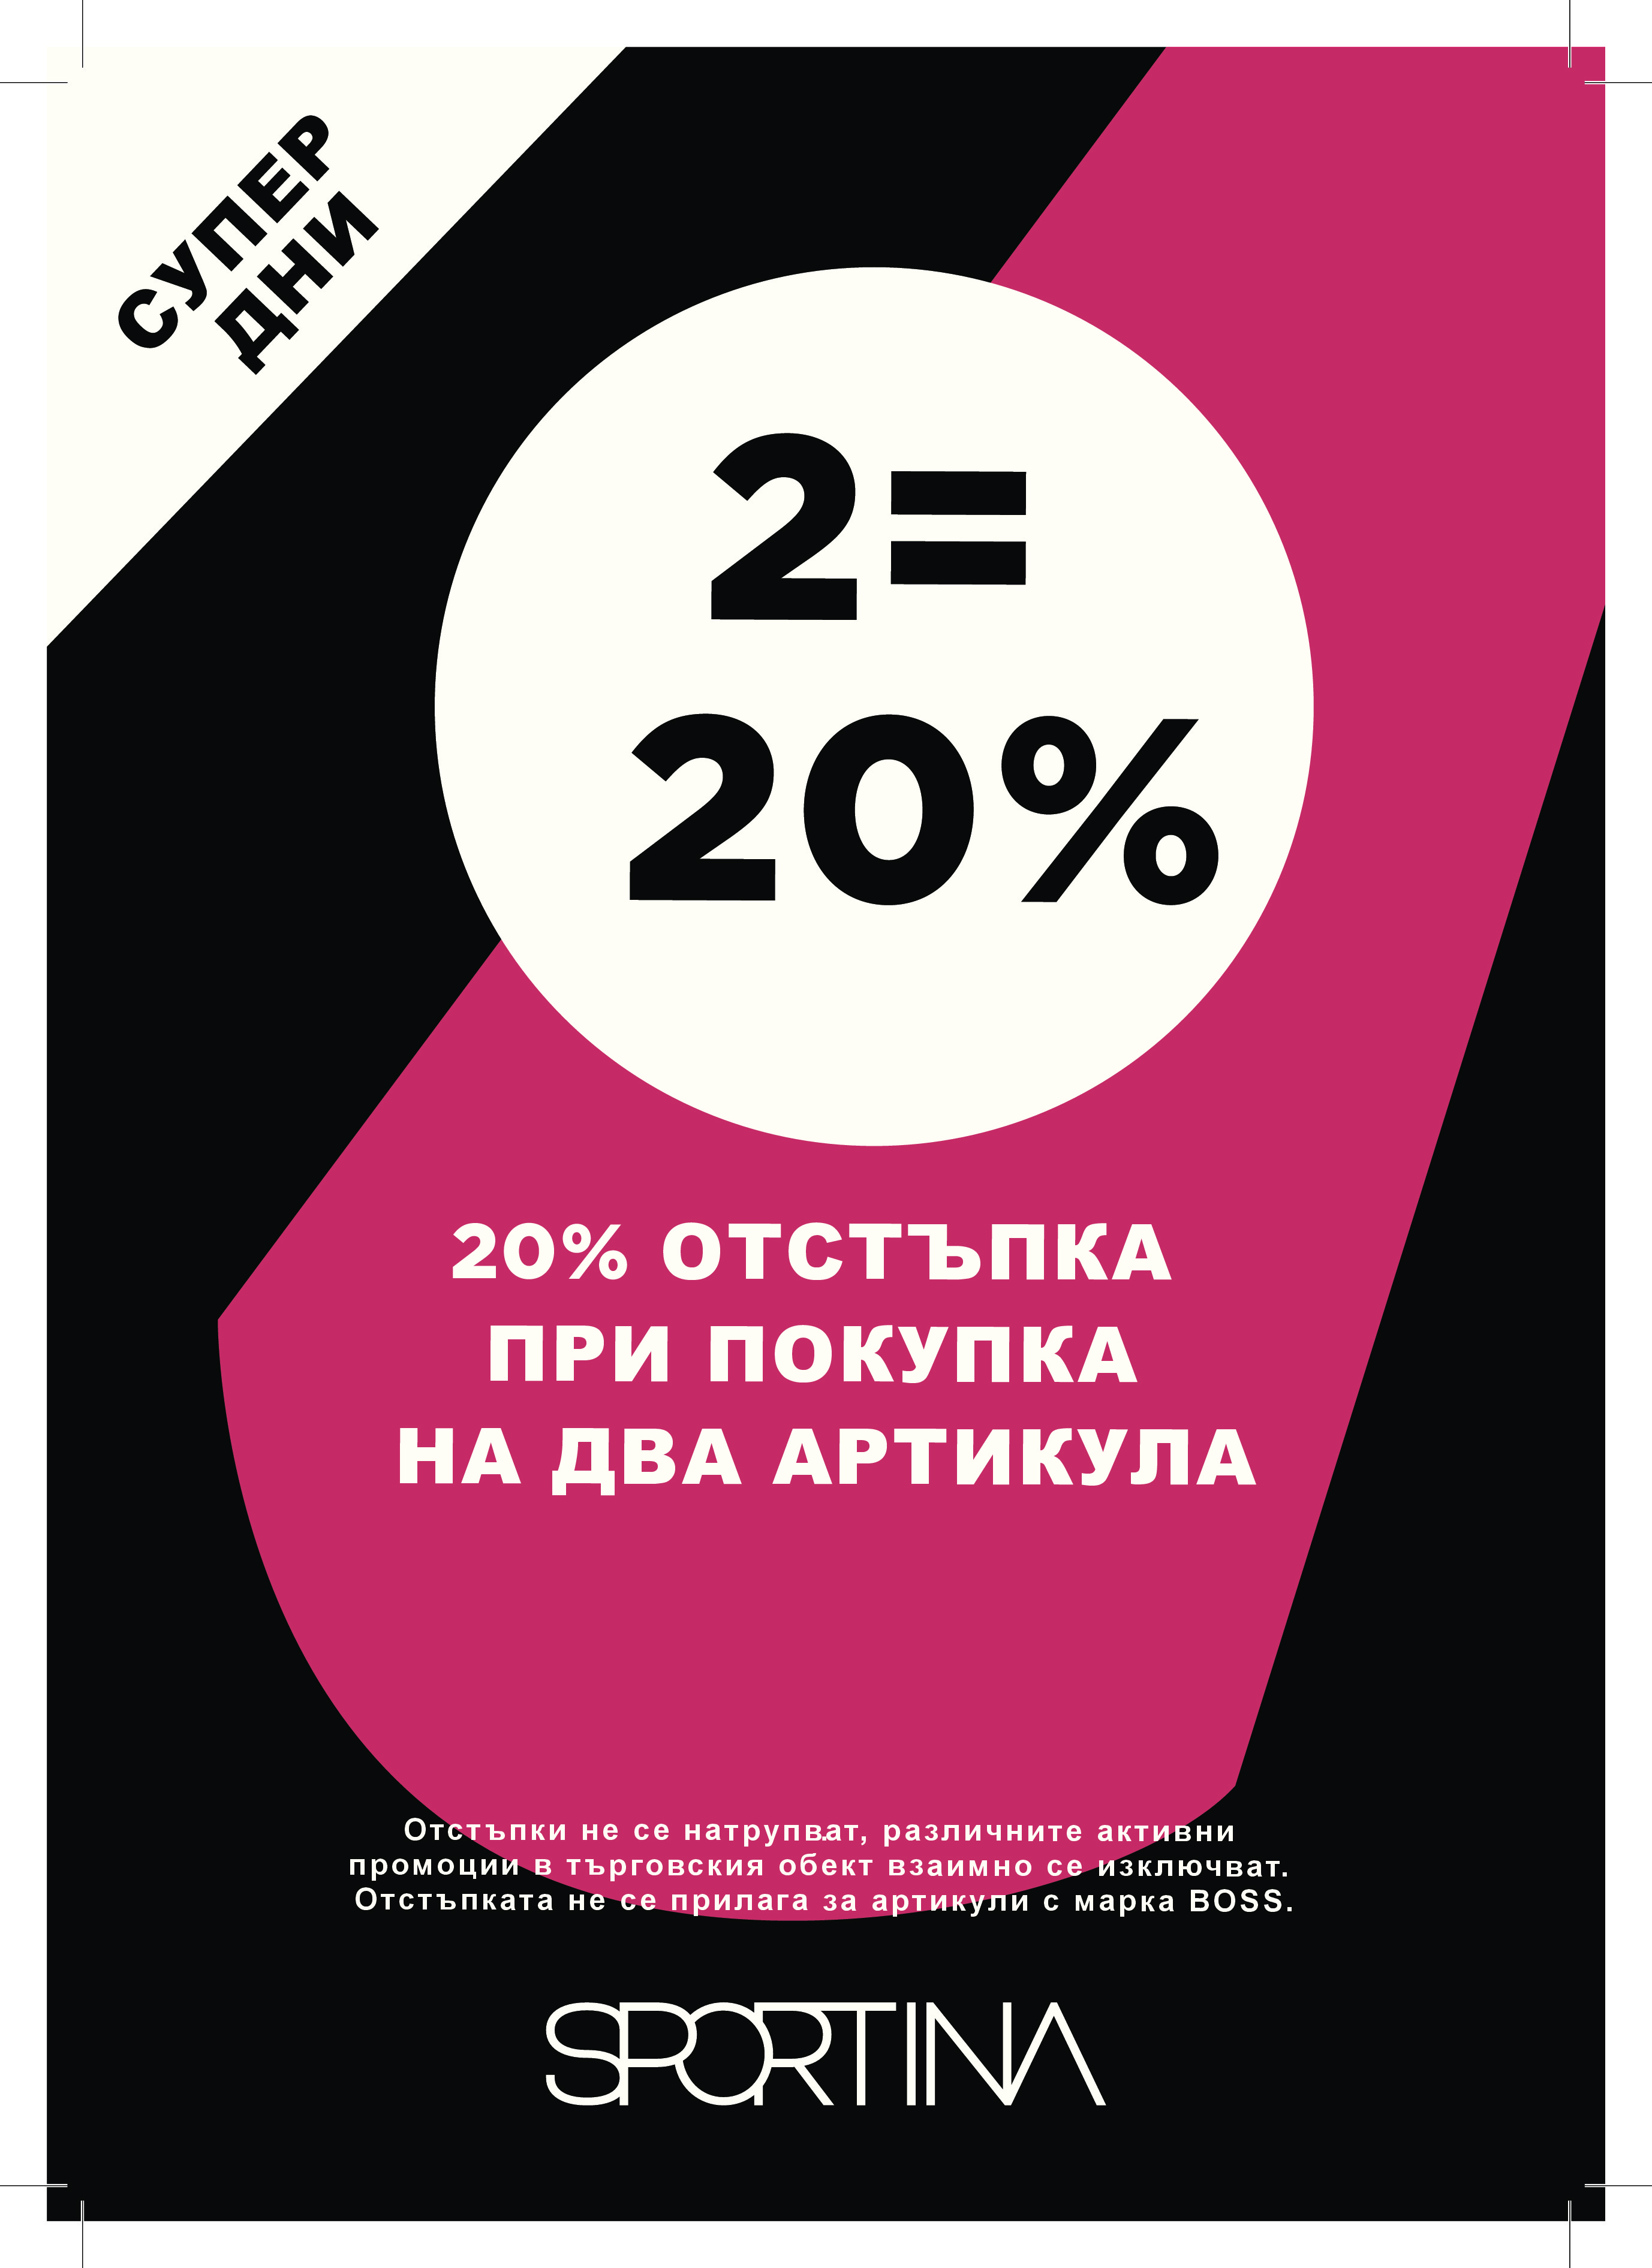 Shops SPORTINA have a special offer for you